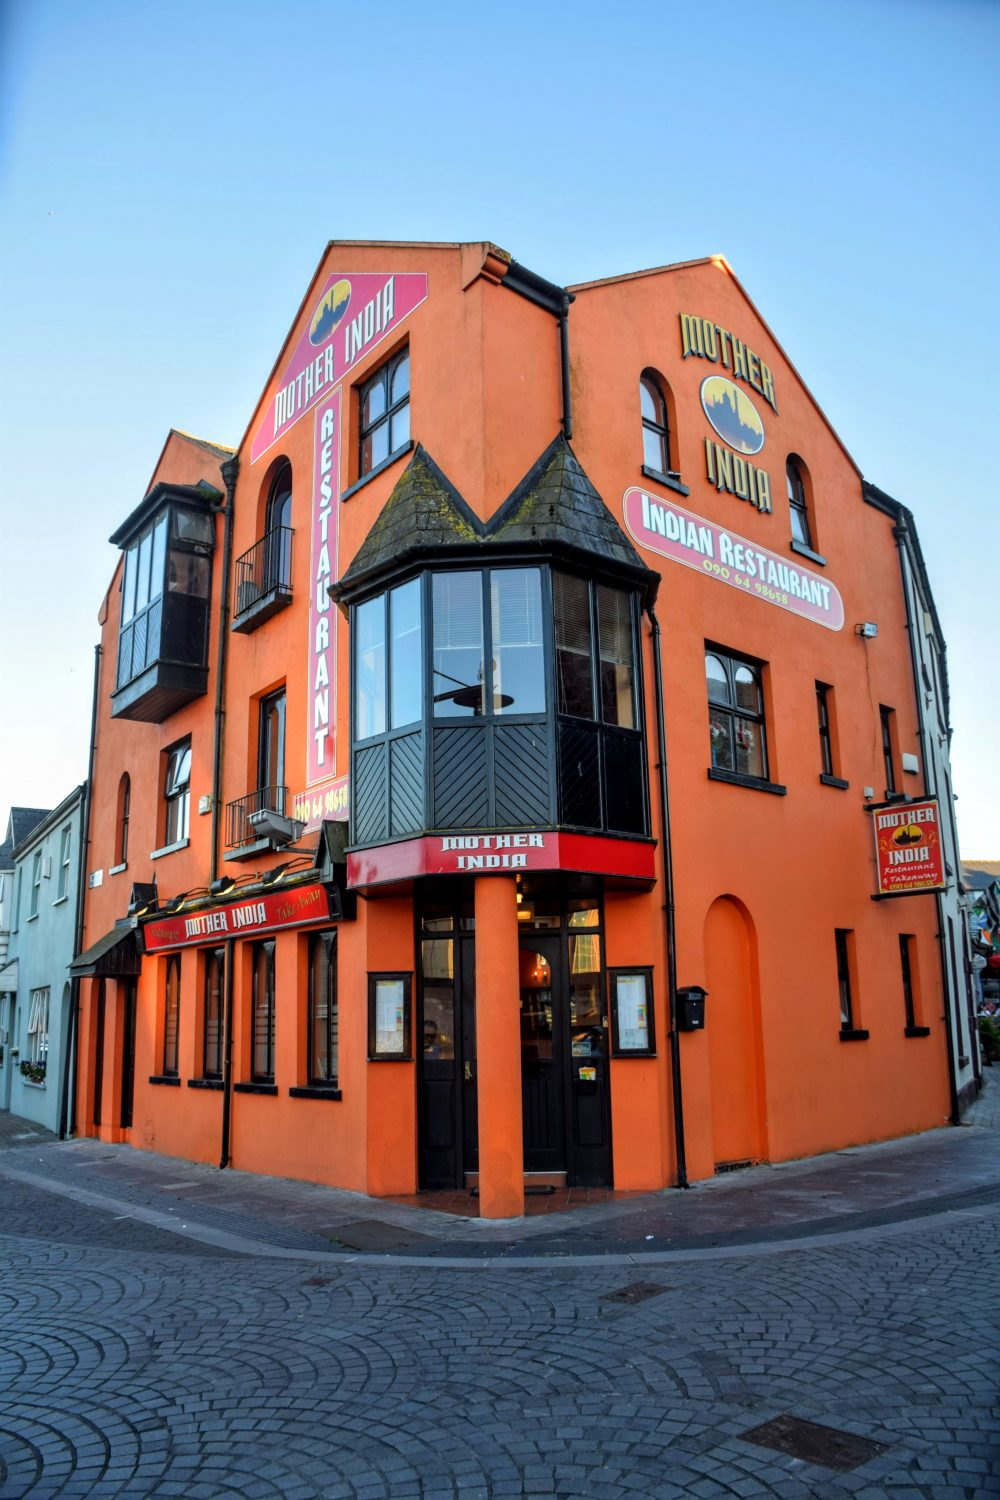 Mother India in Athlone